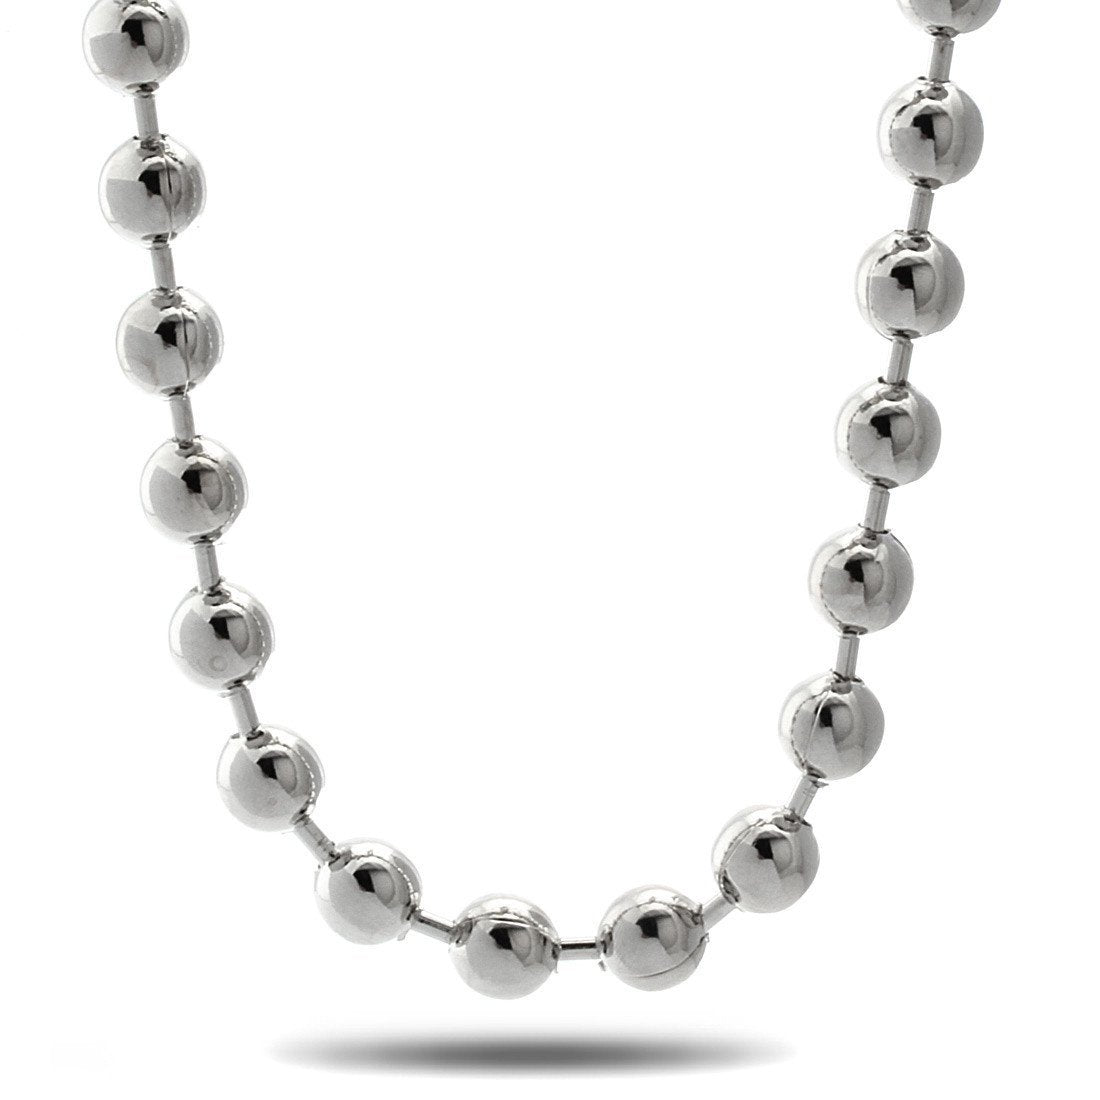 Sale - 10mm King Ice Rhodium Ball Bead Chain -   jetcube